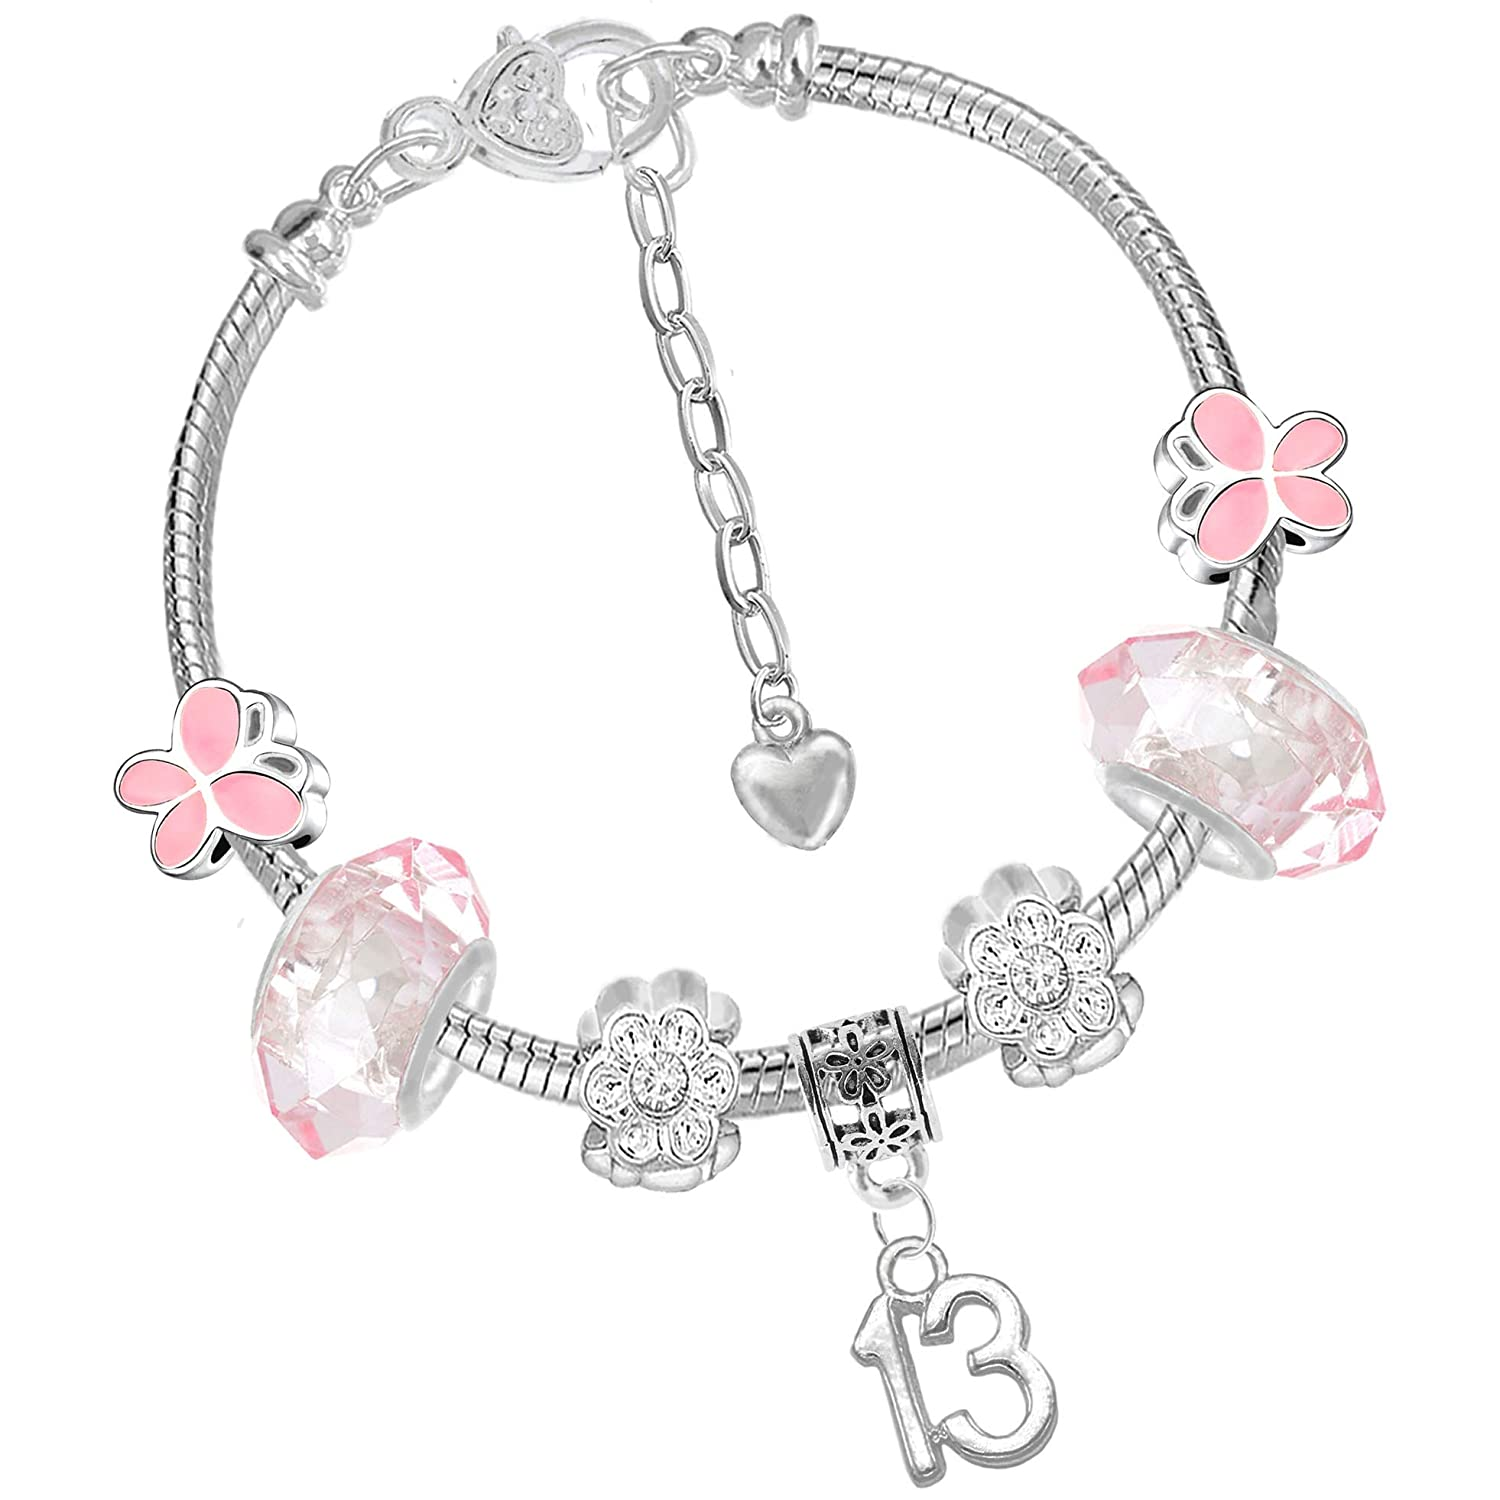 Girls Pink Butterfly Birthday Charm Bracelet and Gift Box Set Age 4 5 6 7 8 9 10 Charm Buddy ® NXG-3 Ch-120 x 2 Q-59-.